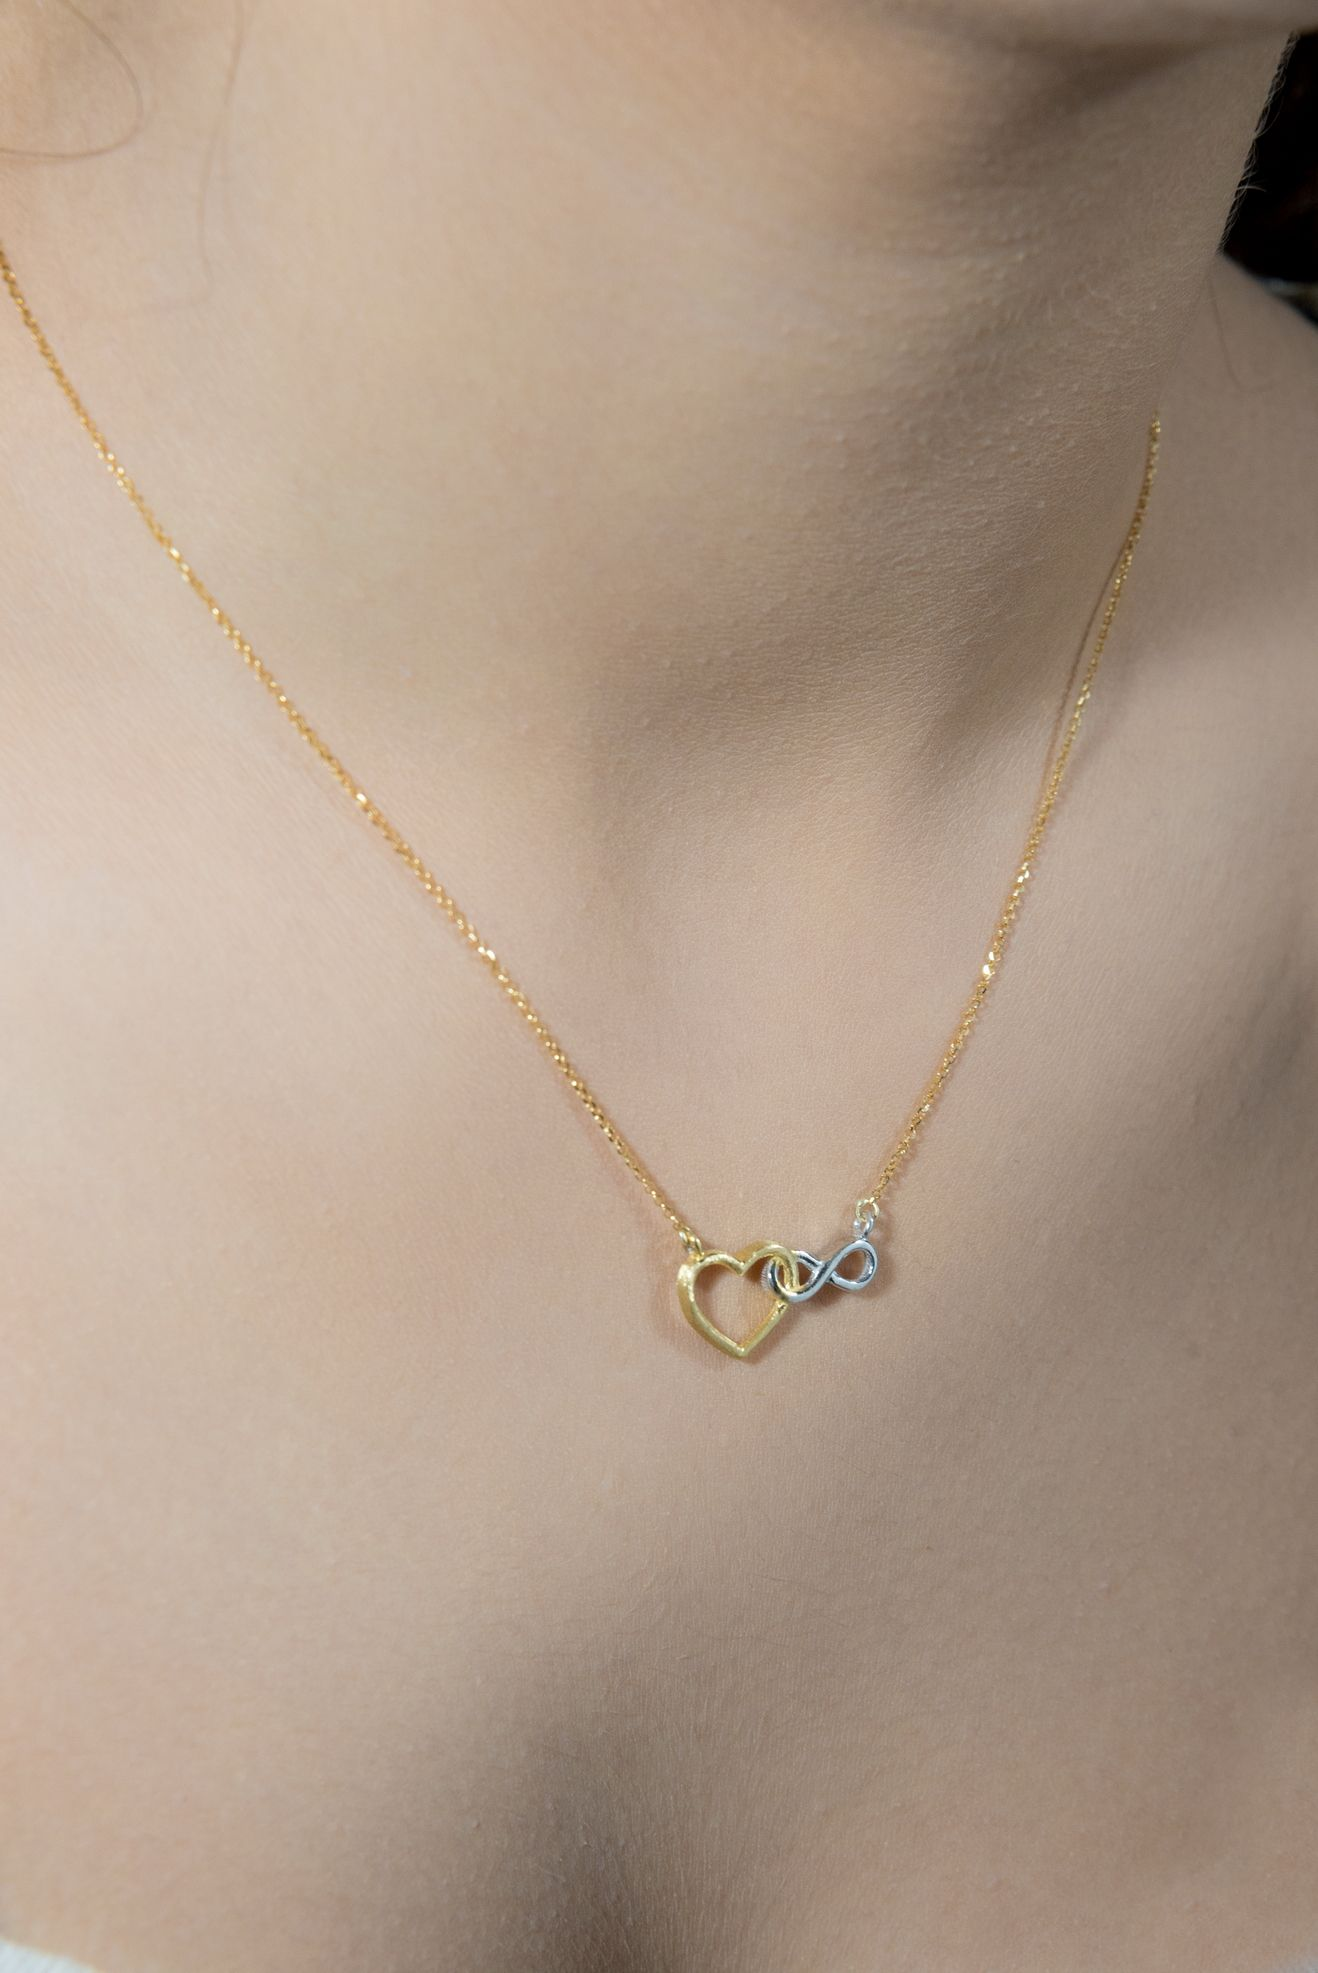 14k Two Tone Yellow Gold Cat Heart Pendant Charm Necklace Animal Fine Jewelry Gifts For Women For Her